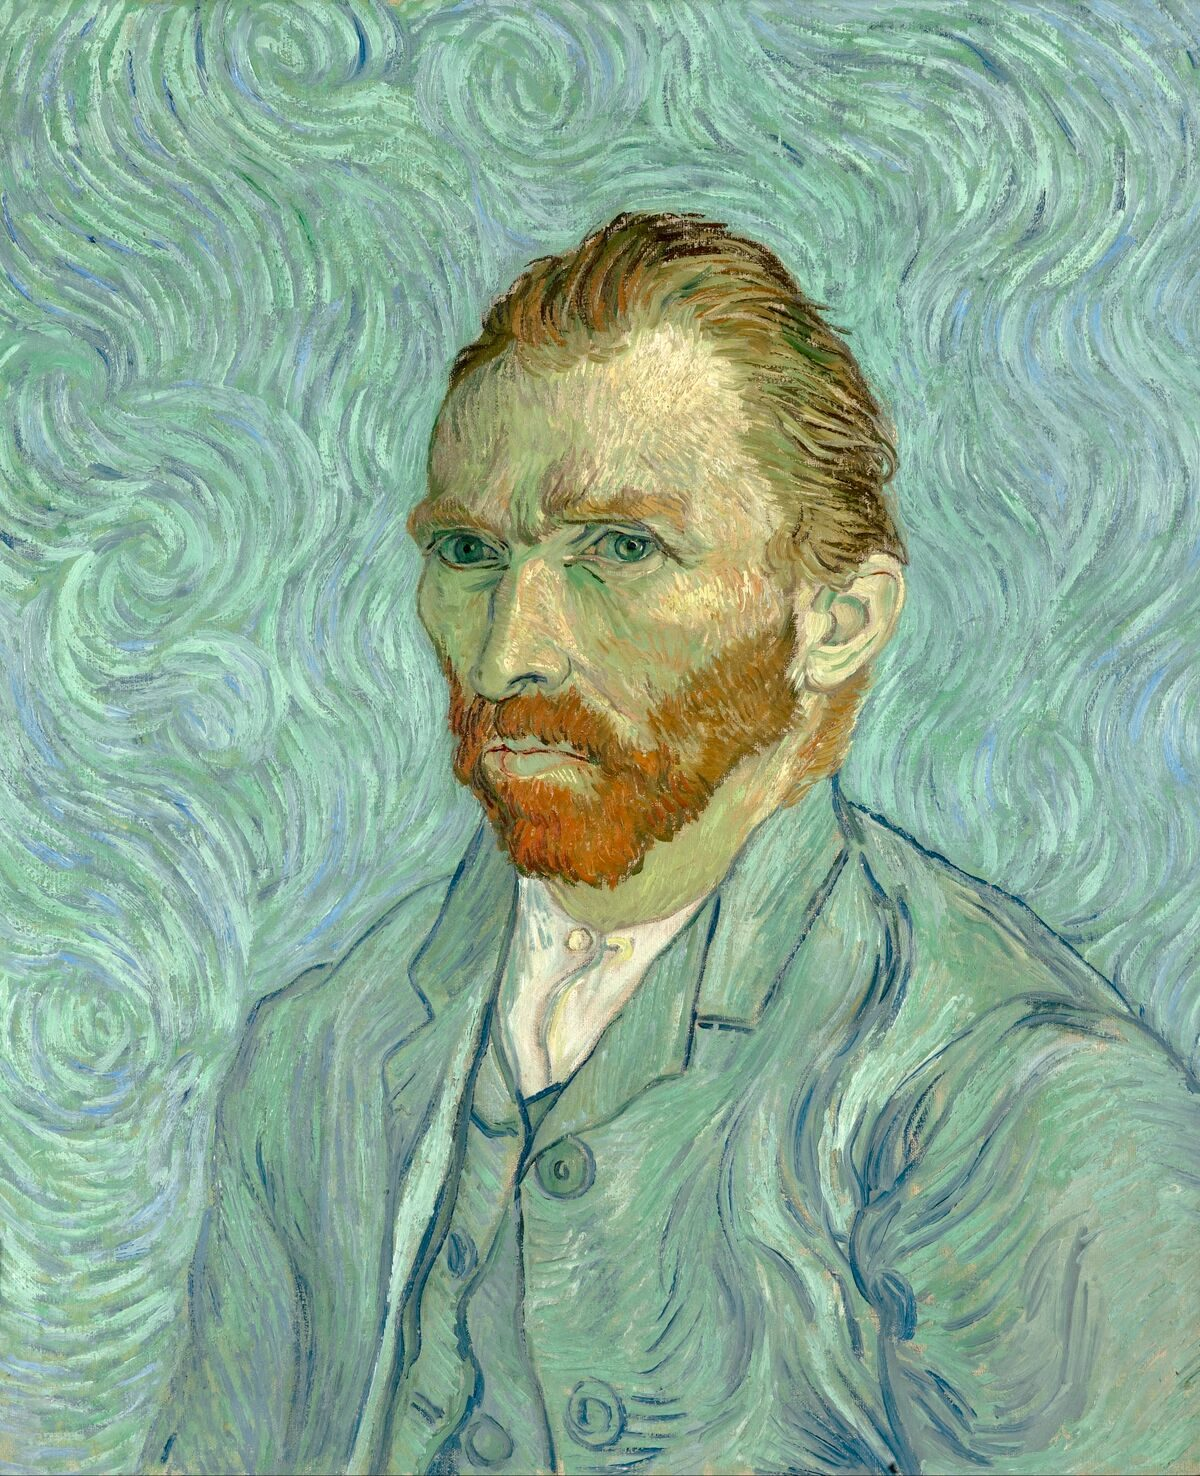 Self-Portrait-van-gogh-1200x1476.jpg